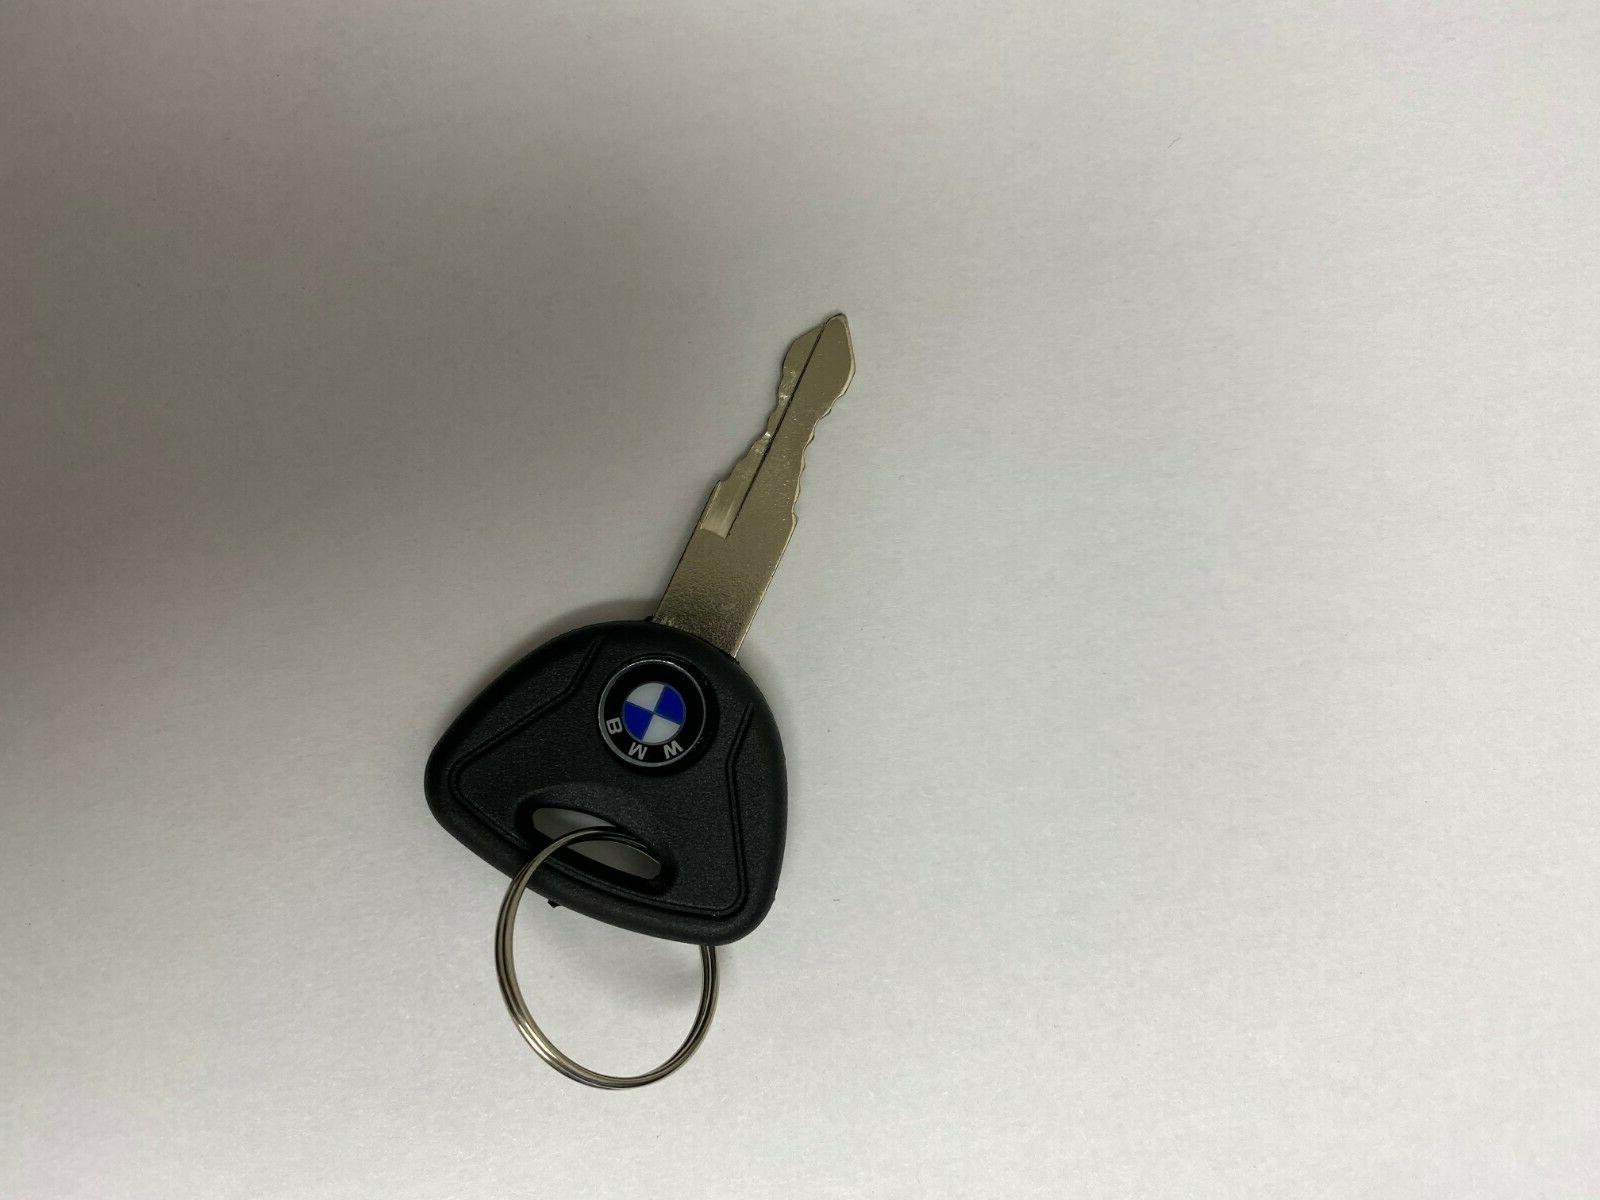 ride on toy bmw motorcycle key